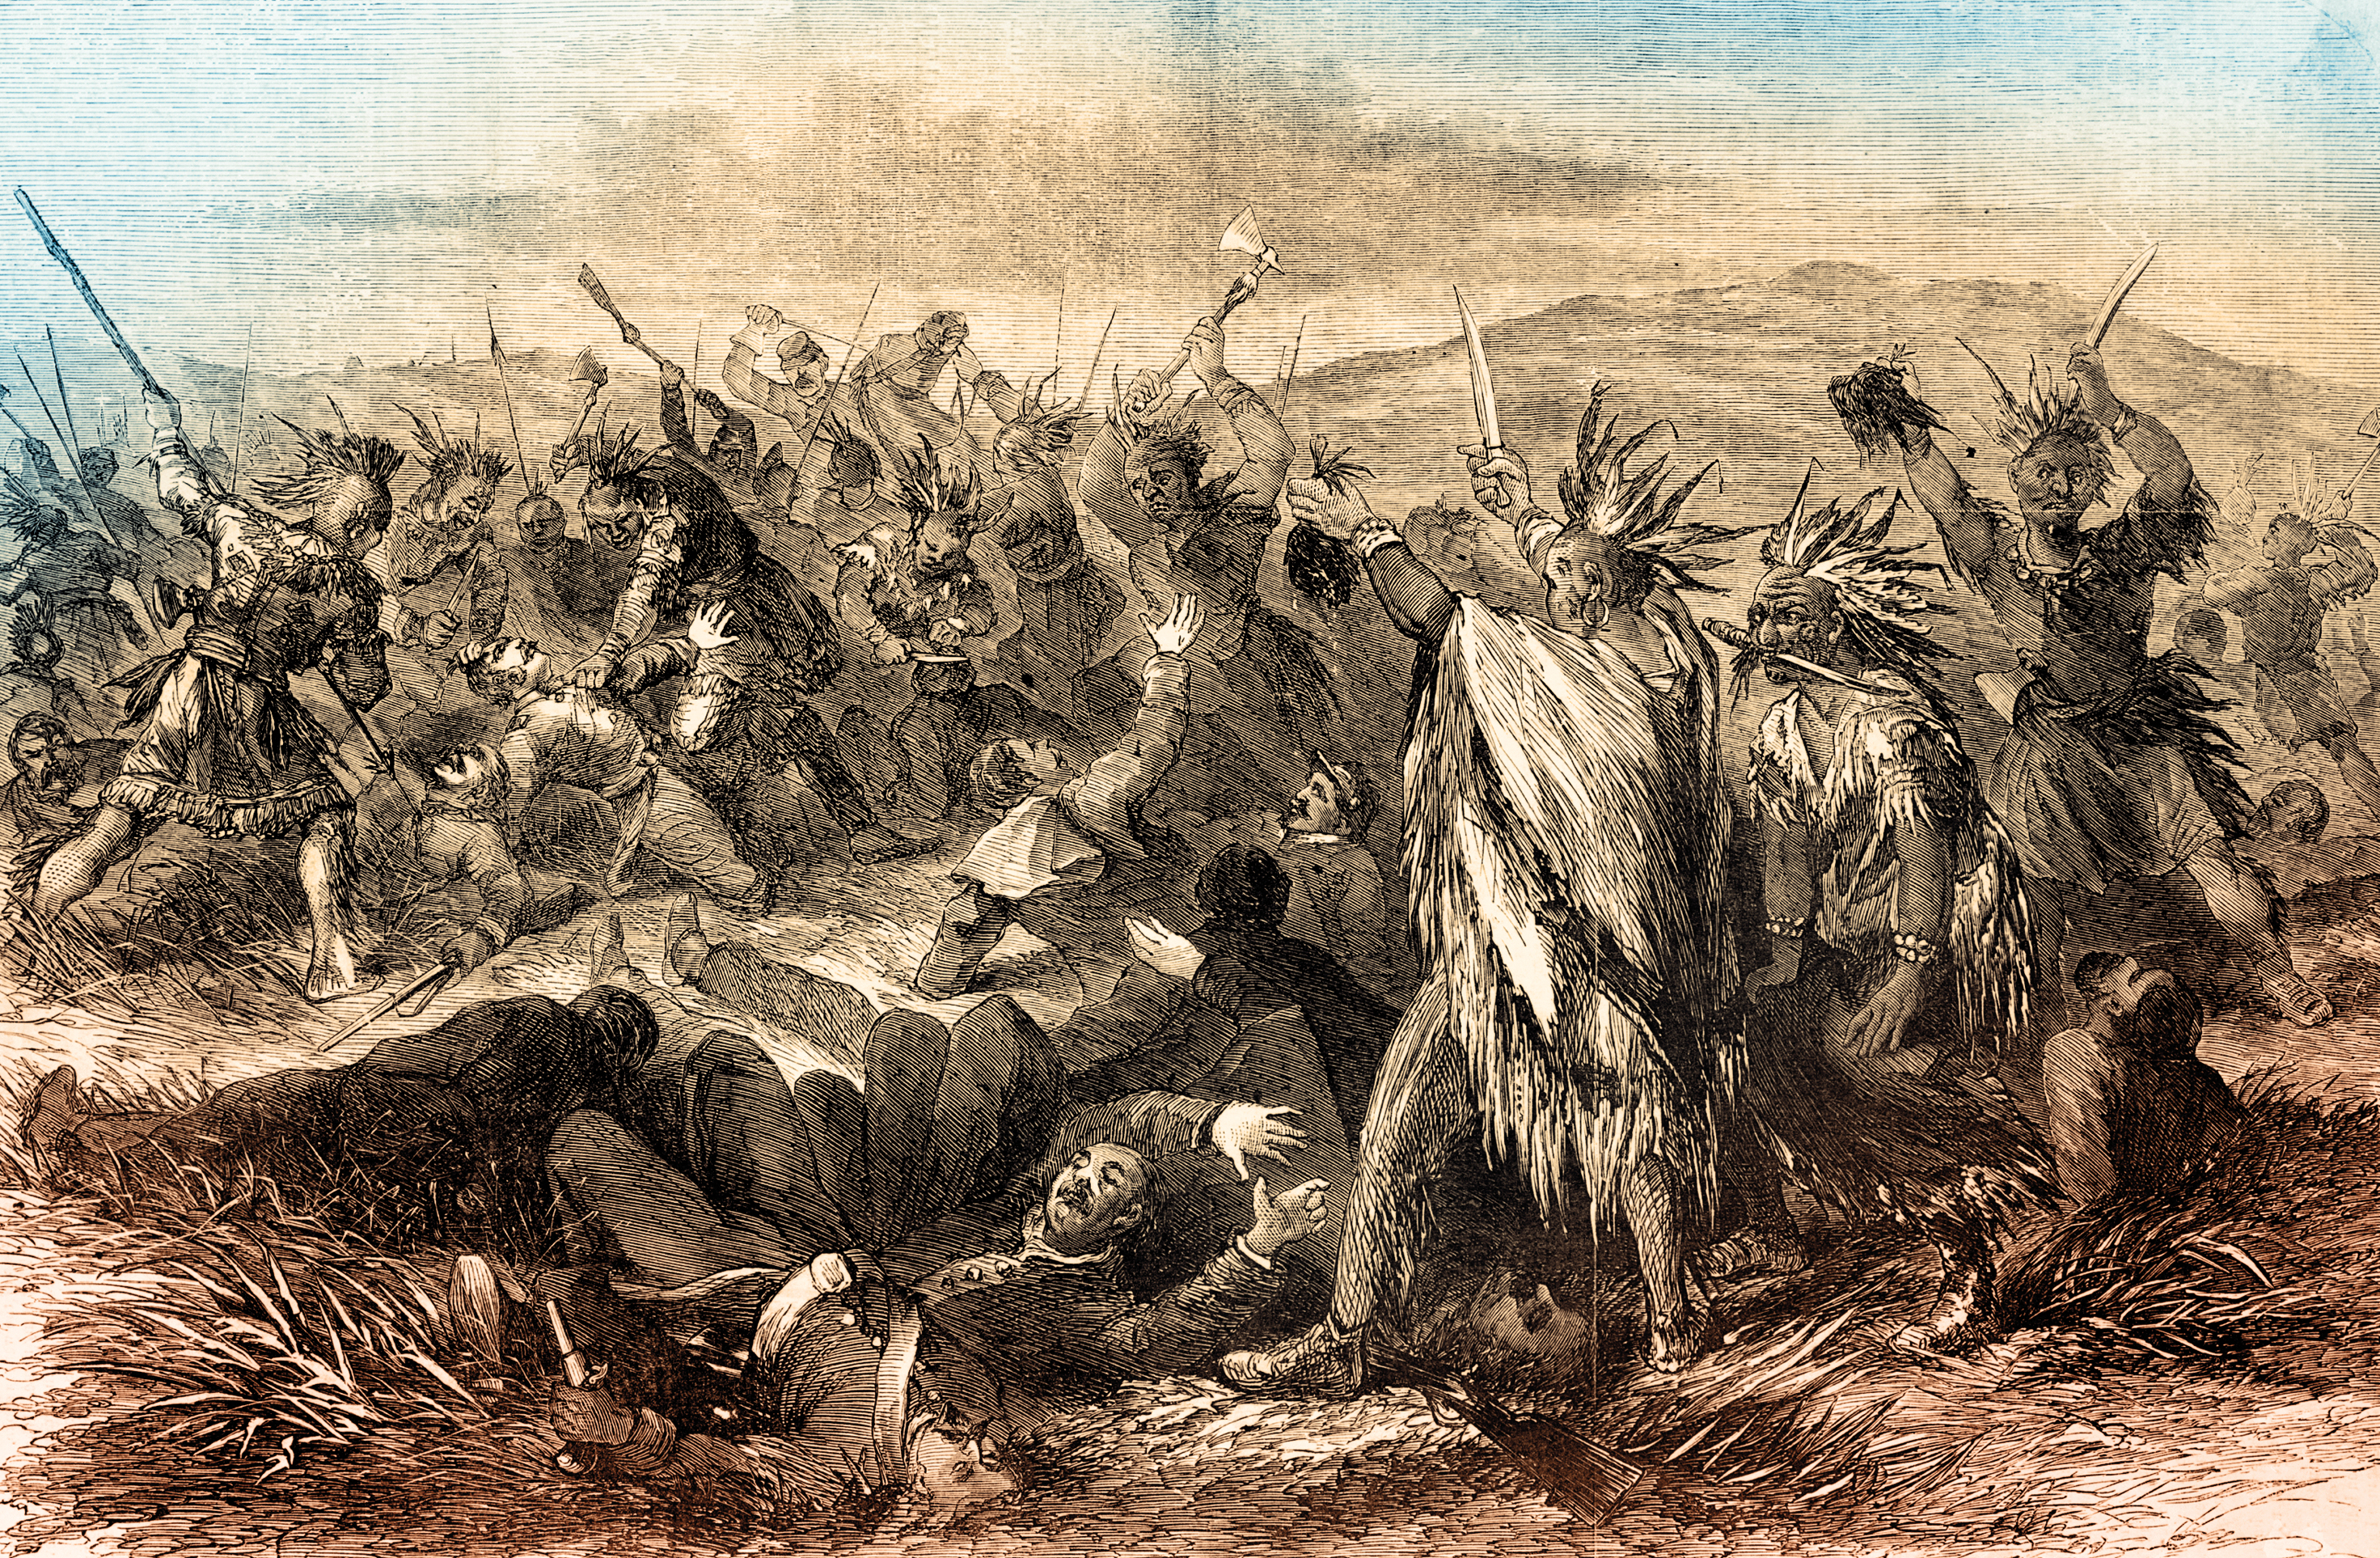 F_CL-The-Massacre-of-United-States-troops-by-the-Sioux-and-Cheyenne-Indians,-near-Fort-Philip-Kearney,-Dakotah-Territory-[sic],-December-22nd,-1866_scaled